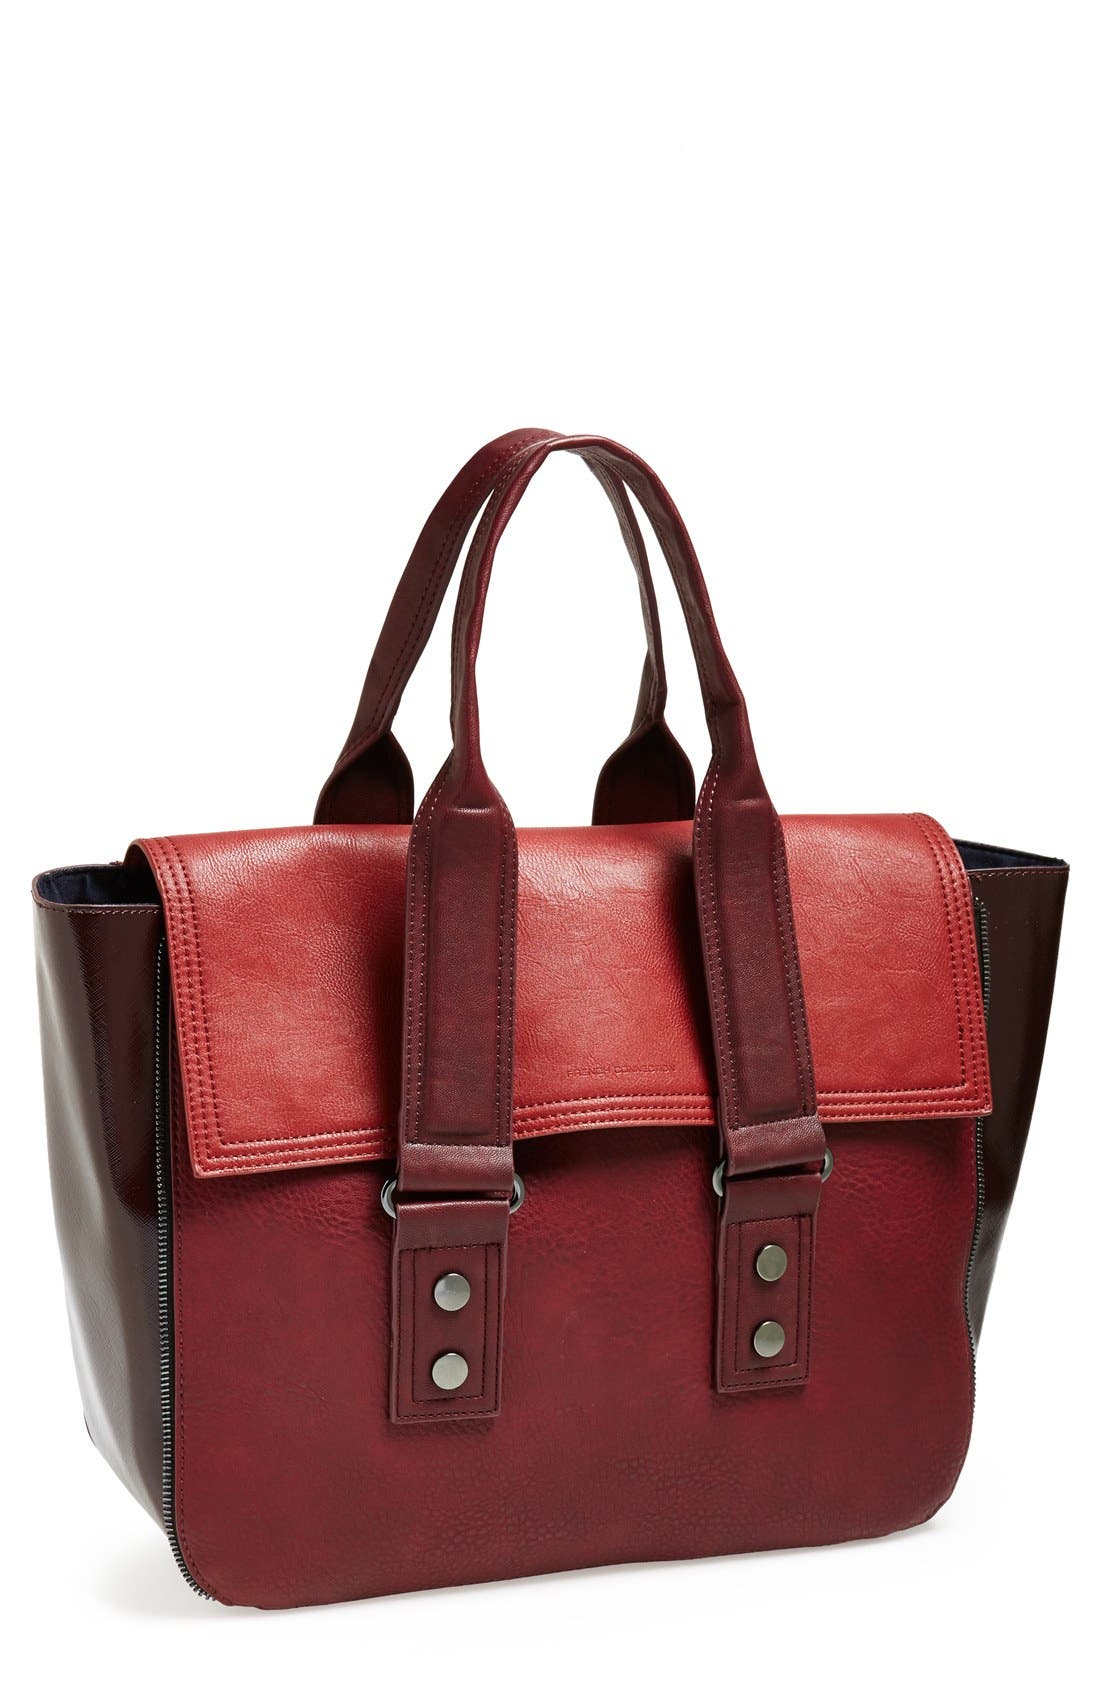 Main Image - French Connection 'Elite' Faux Leather Tote